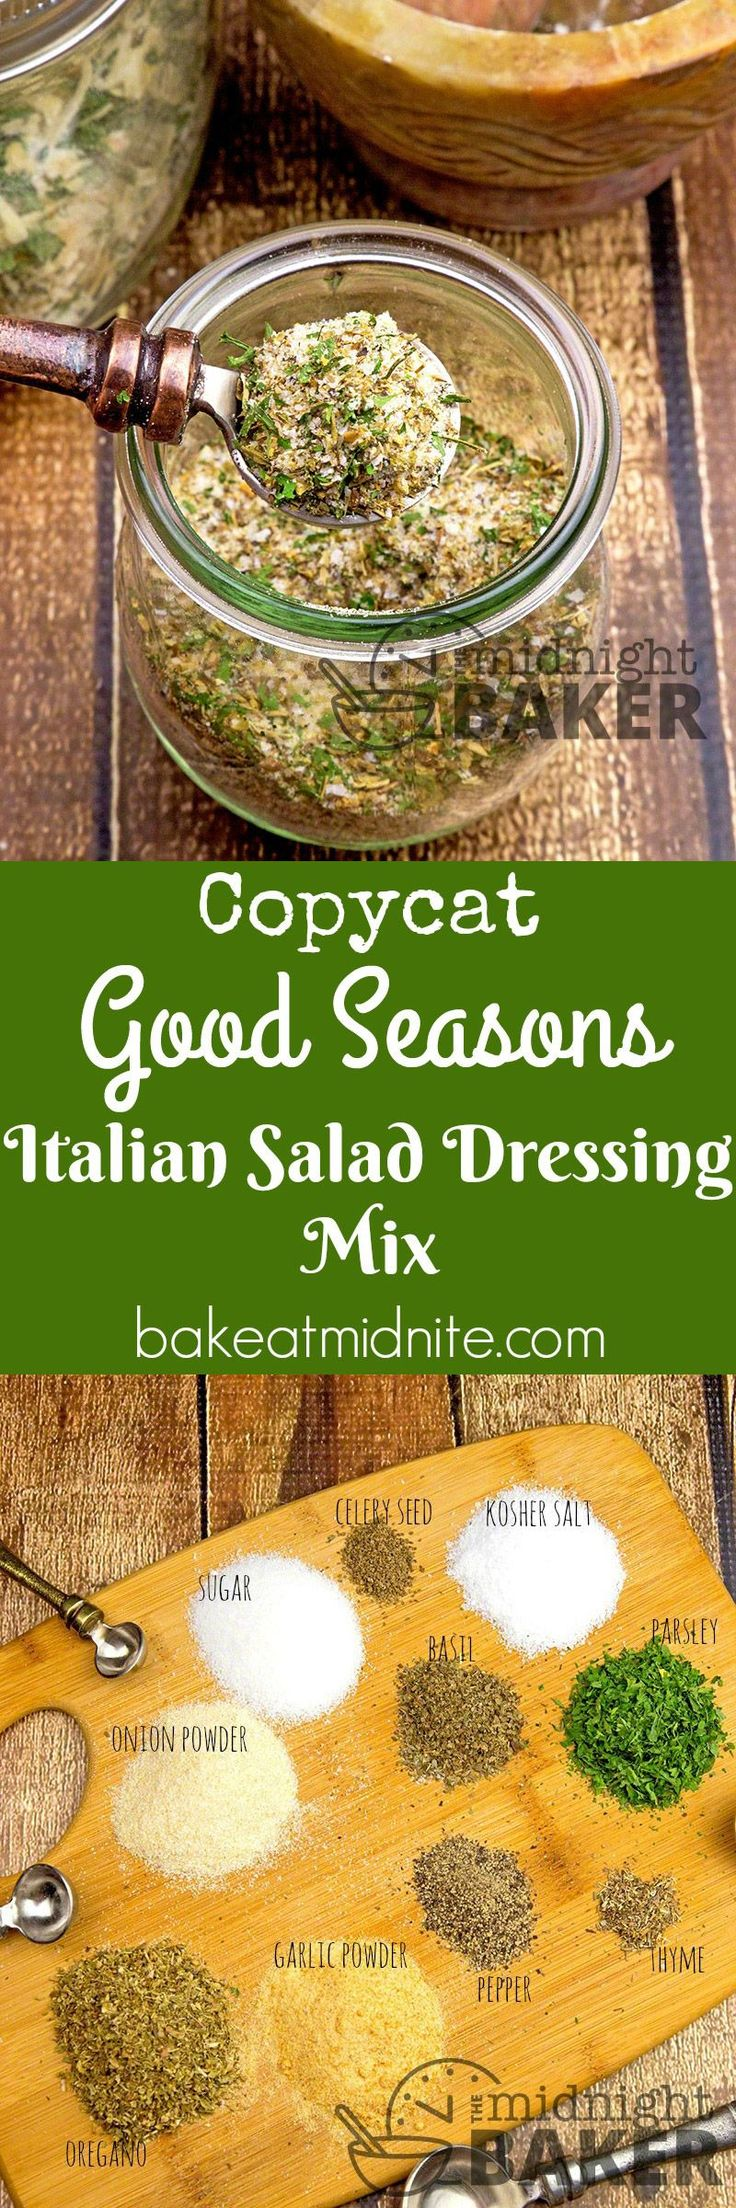 A copycat of Good Seasons Italian dressing mix that's inexpensive to make. You won't buy it again!